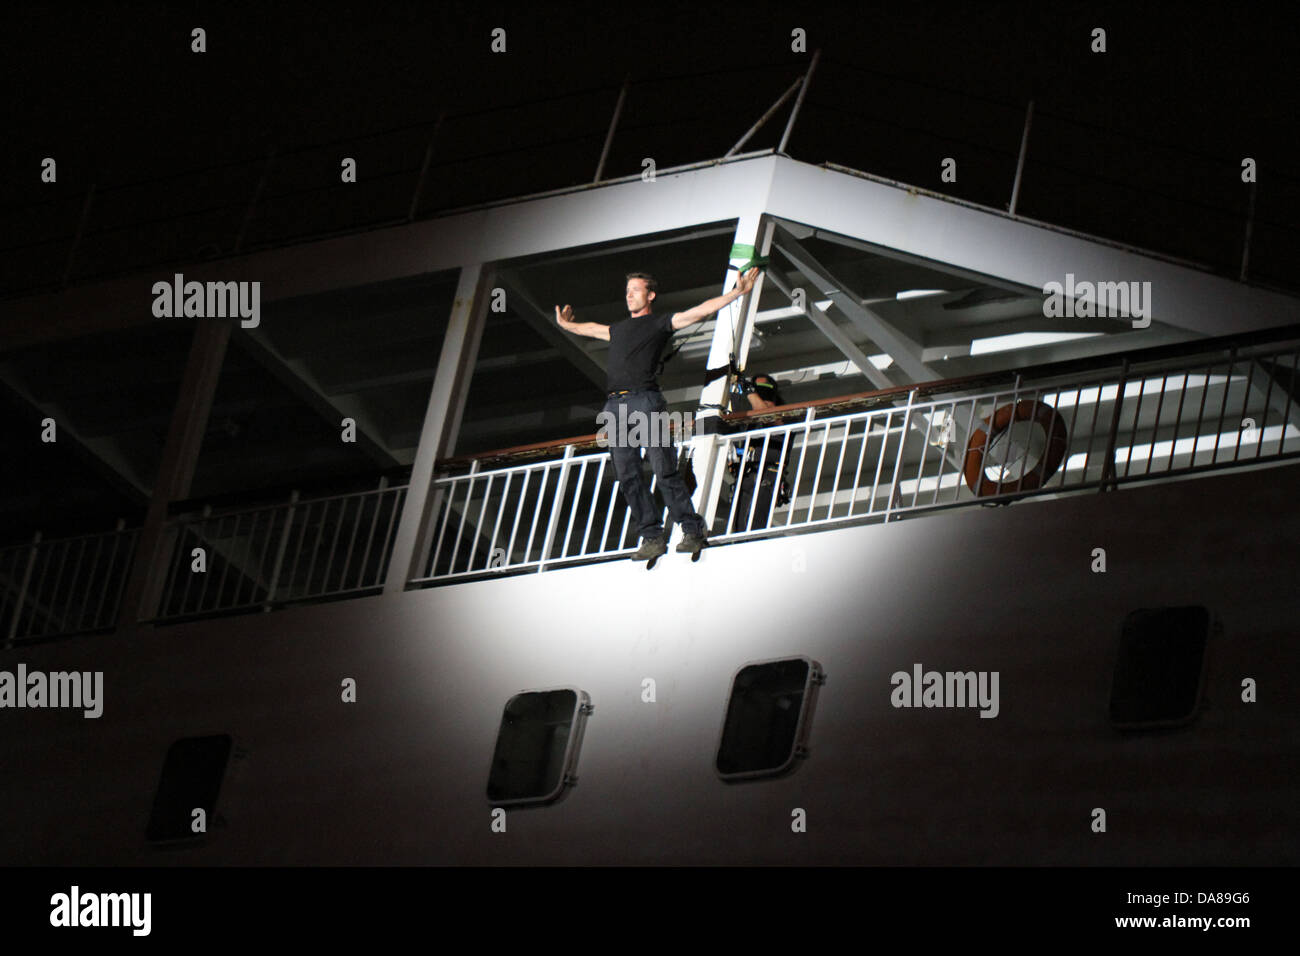 Man walking down the side of a cruise ship - Stock Image